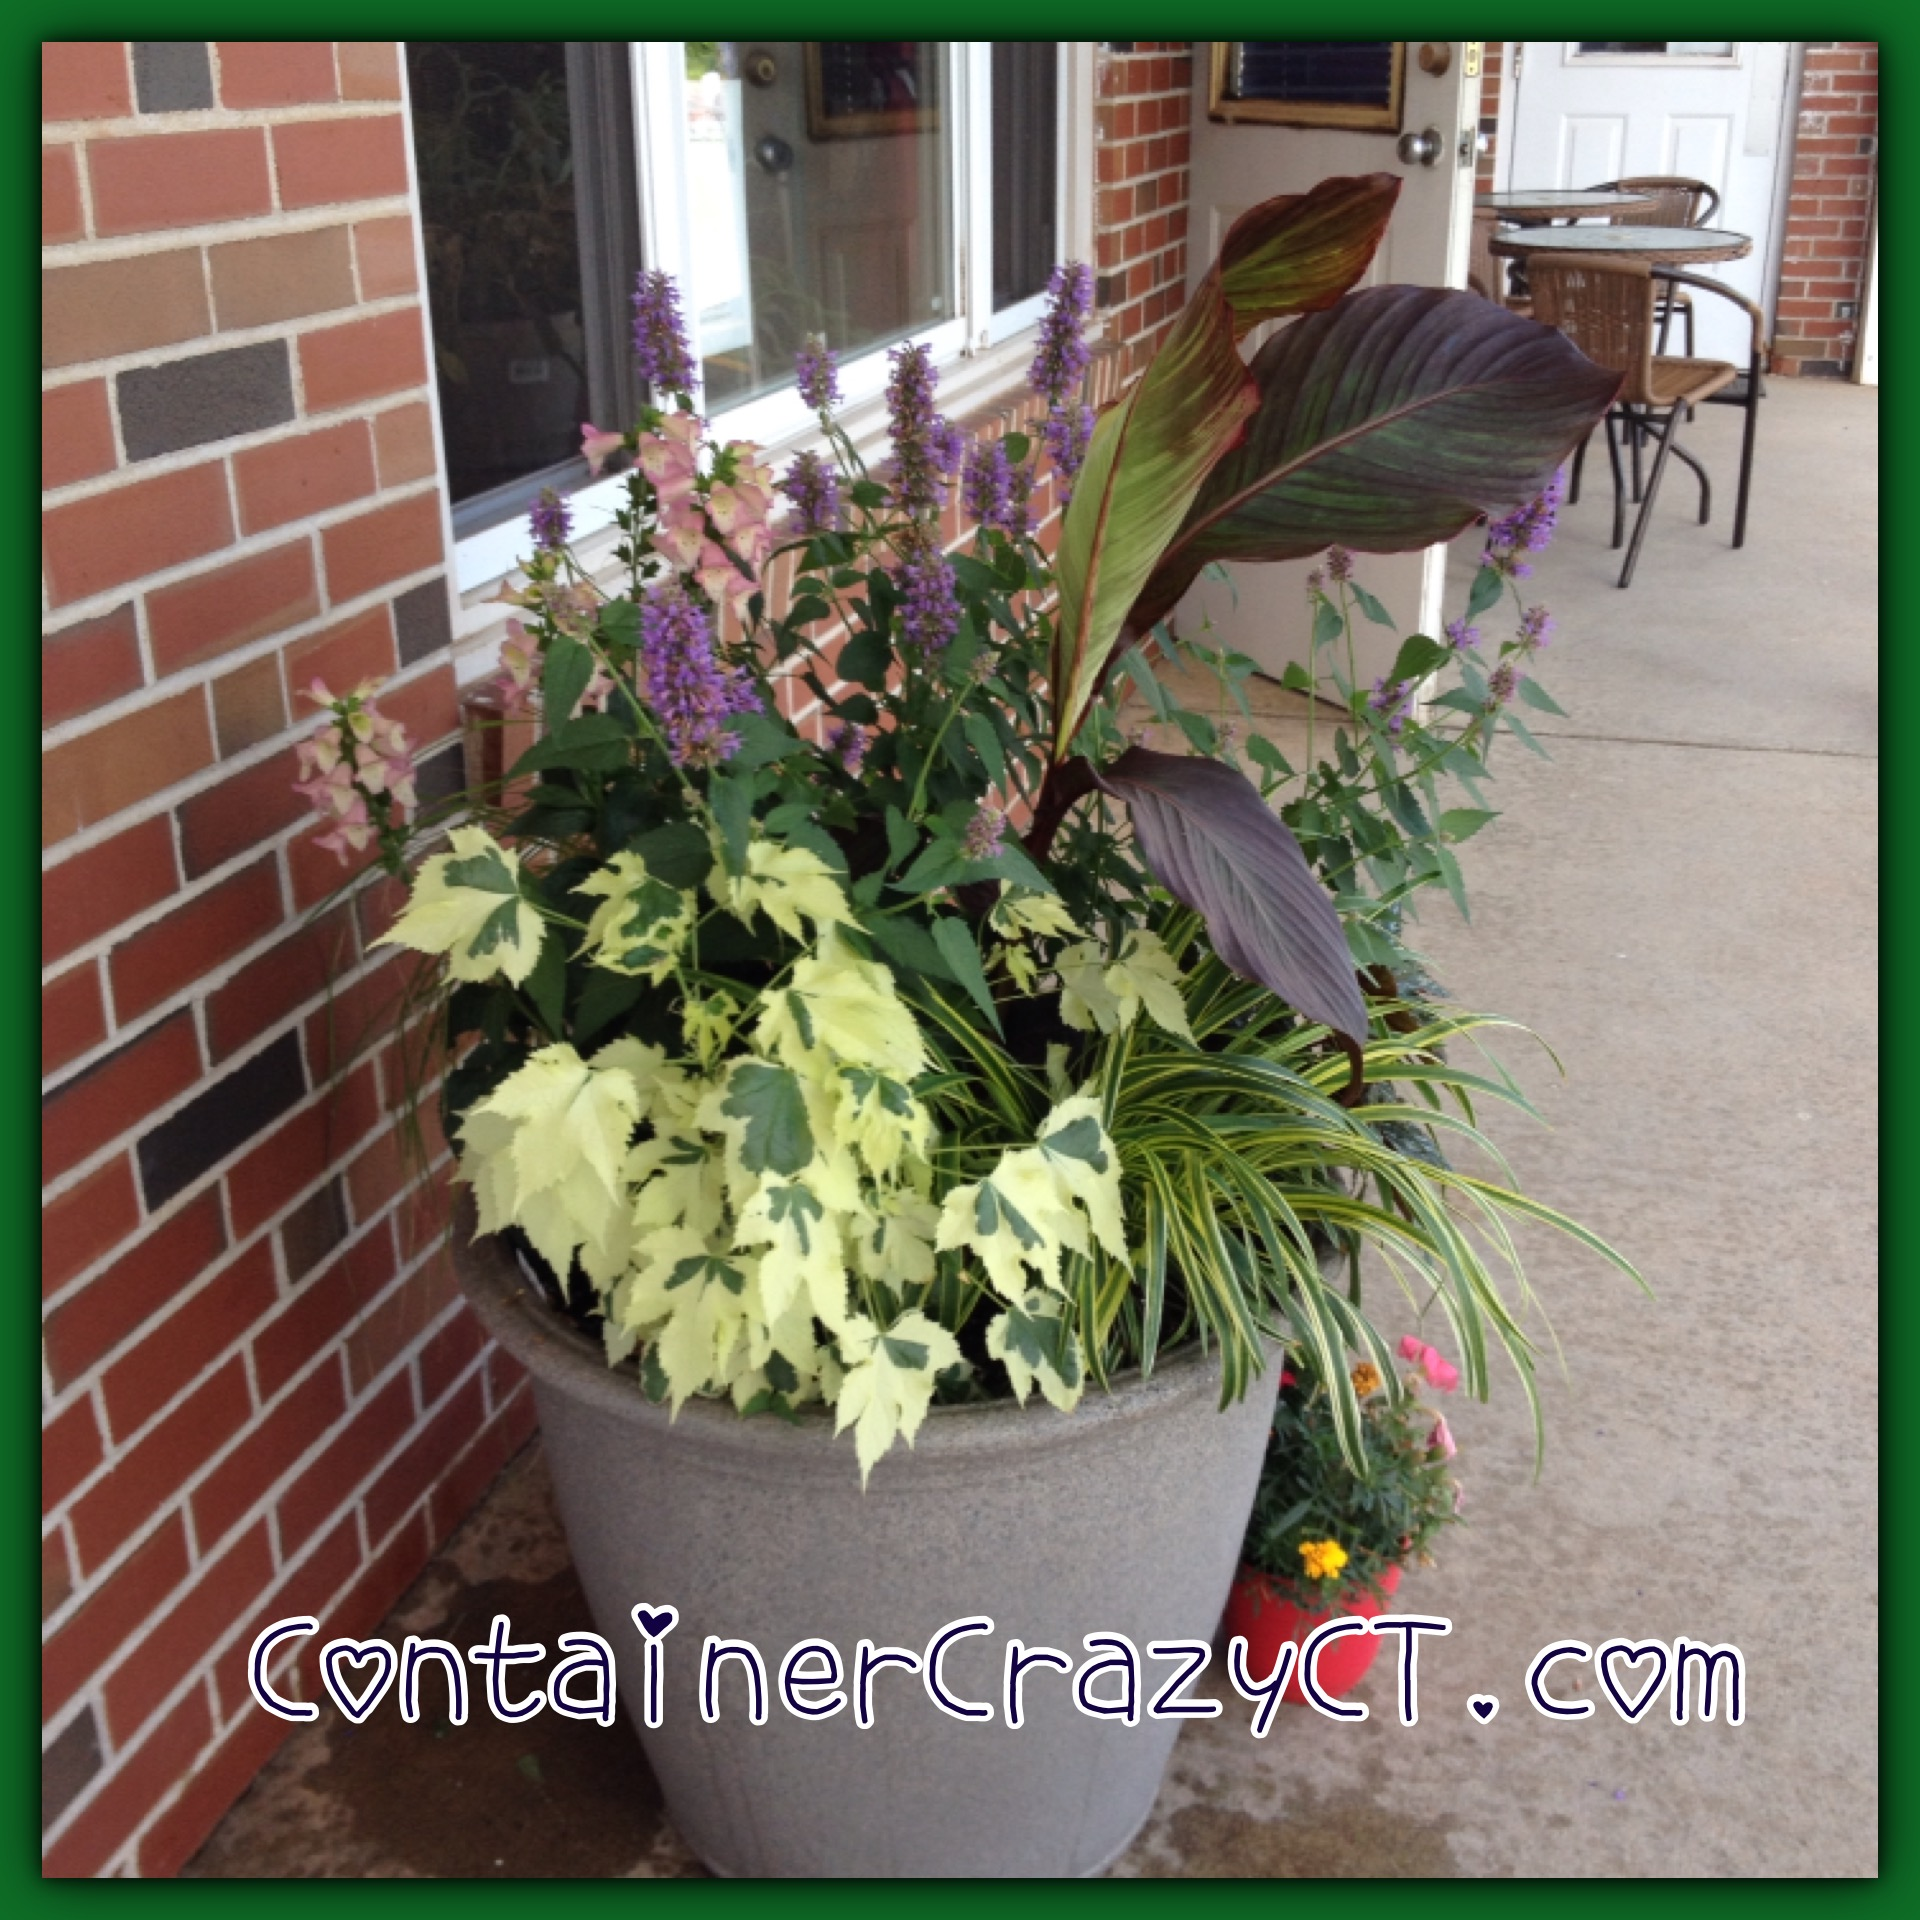 Container Garden Install at a Hairdressers Shop